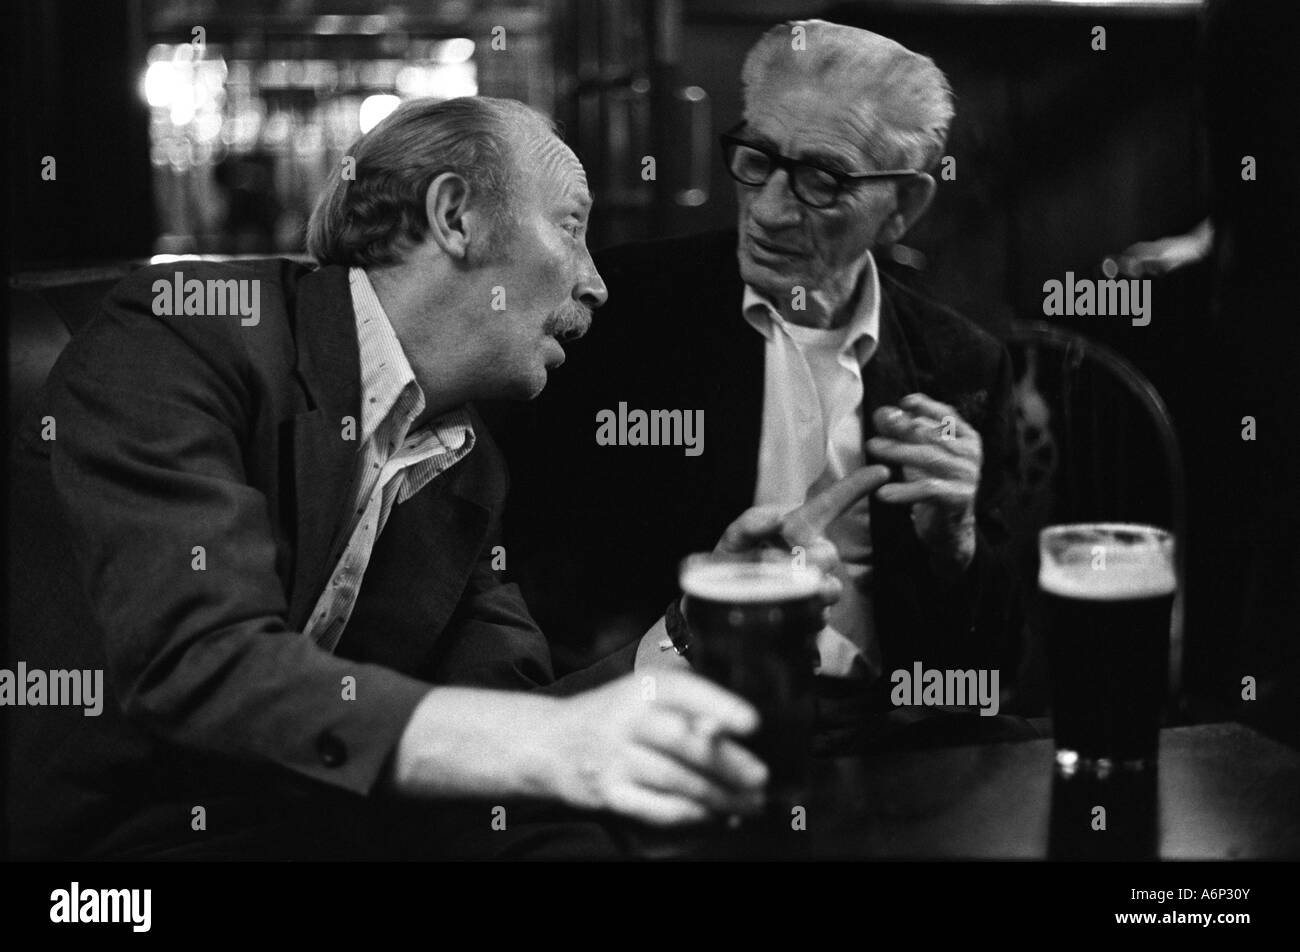 Men drinking beer chatting talking over a pint of beer in a pub 1970s Britain UK 70s HOMER SYKES - Stock Image